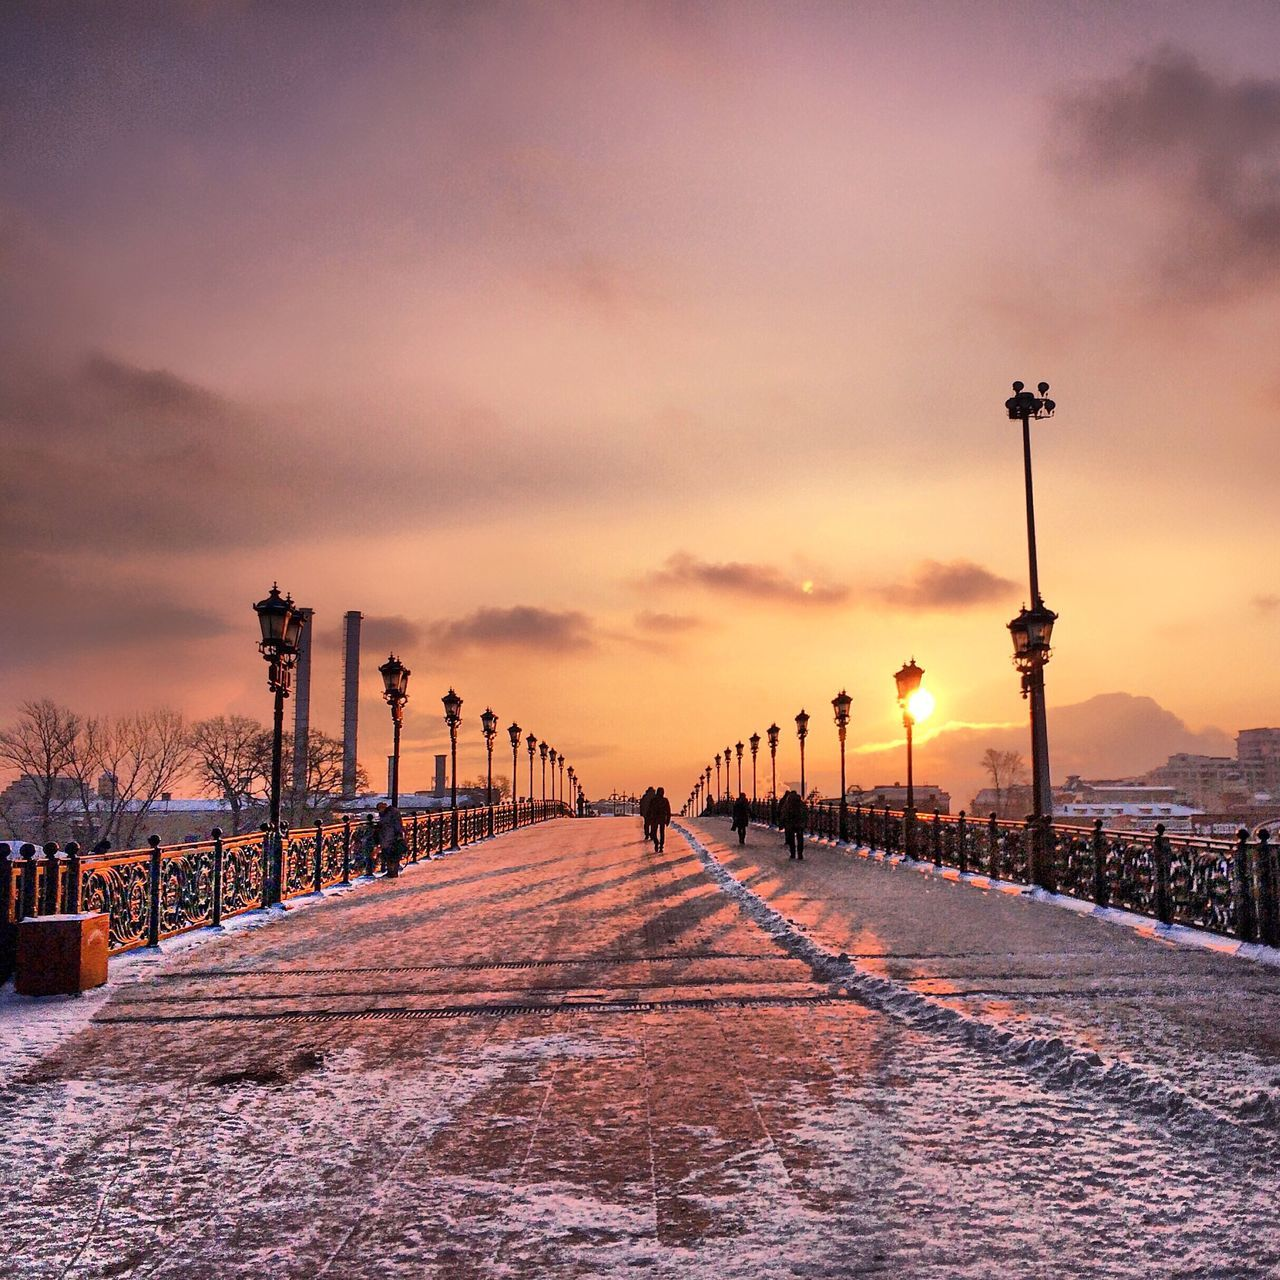 Snowy Patriarchal Bridge Against Sky During Sunset